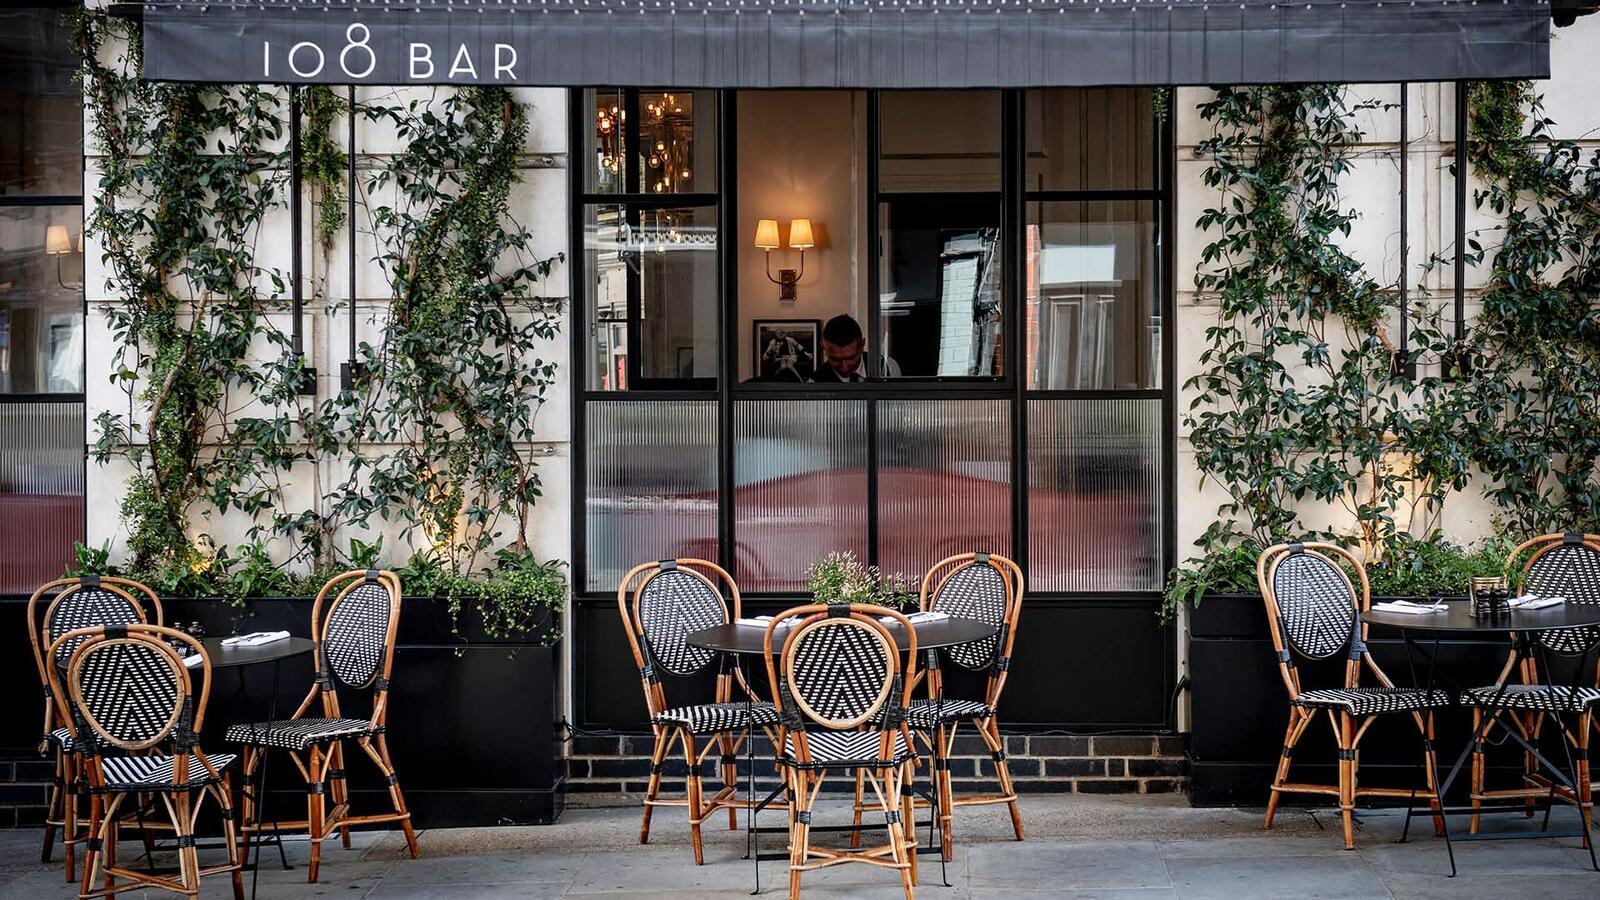 Outside of 108 Brasserie at The Marylebone